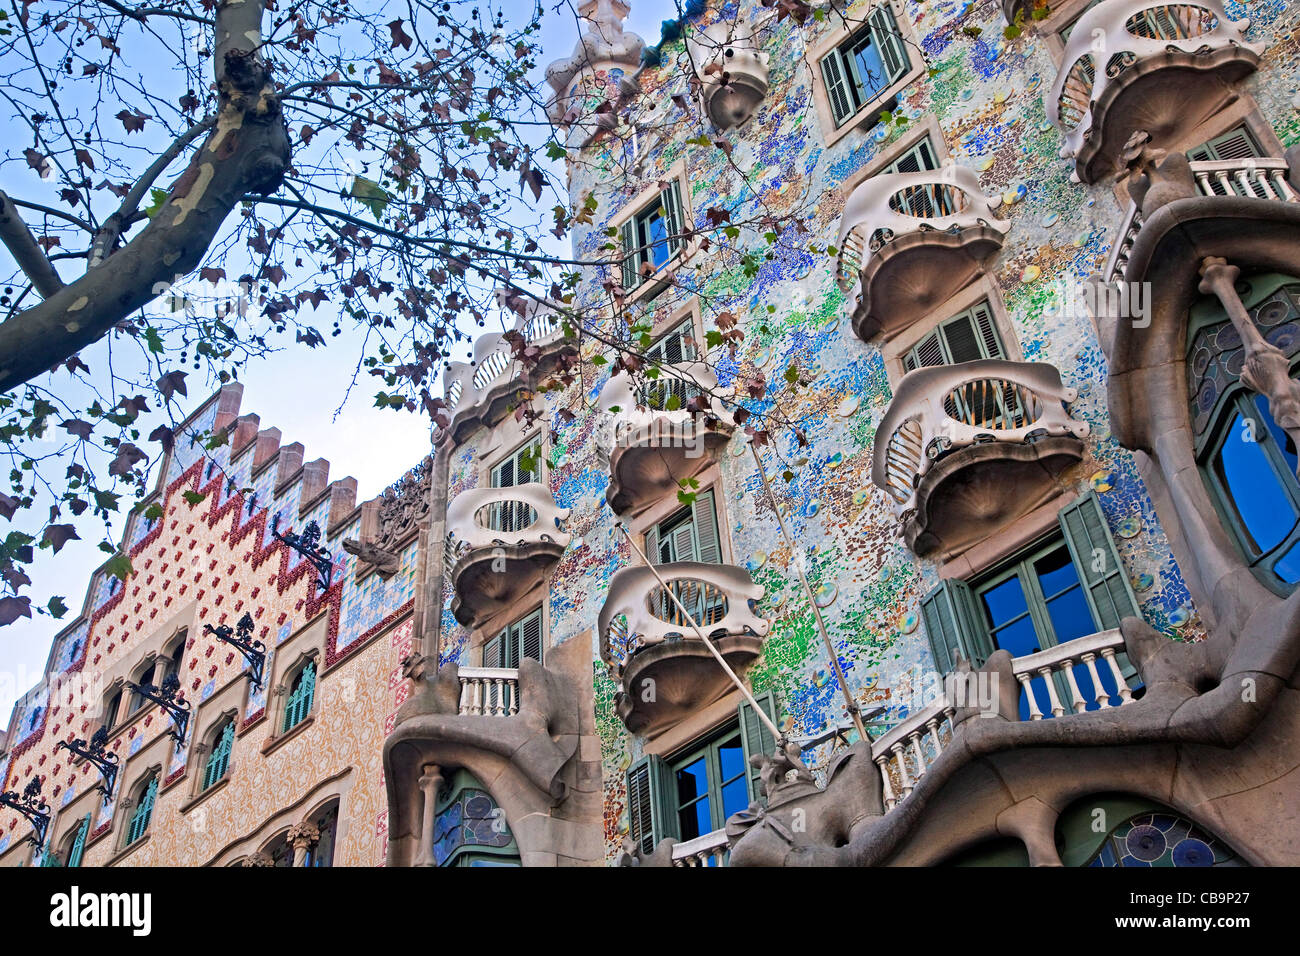 Casa Milà / La Pedrera, building designed by the Catalan architect Antoni Gaudí, Barcelona, Spain Stock Photo